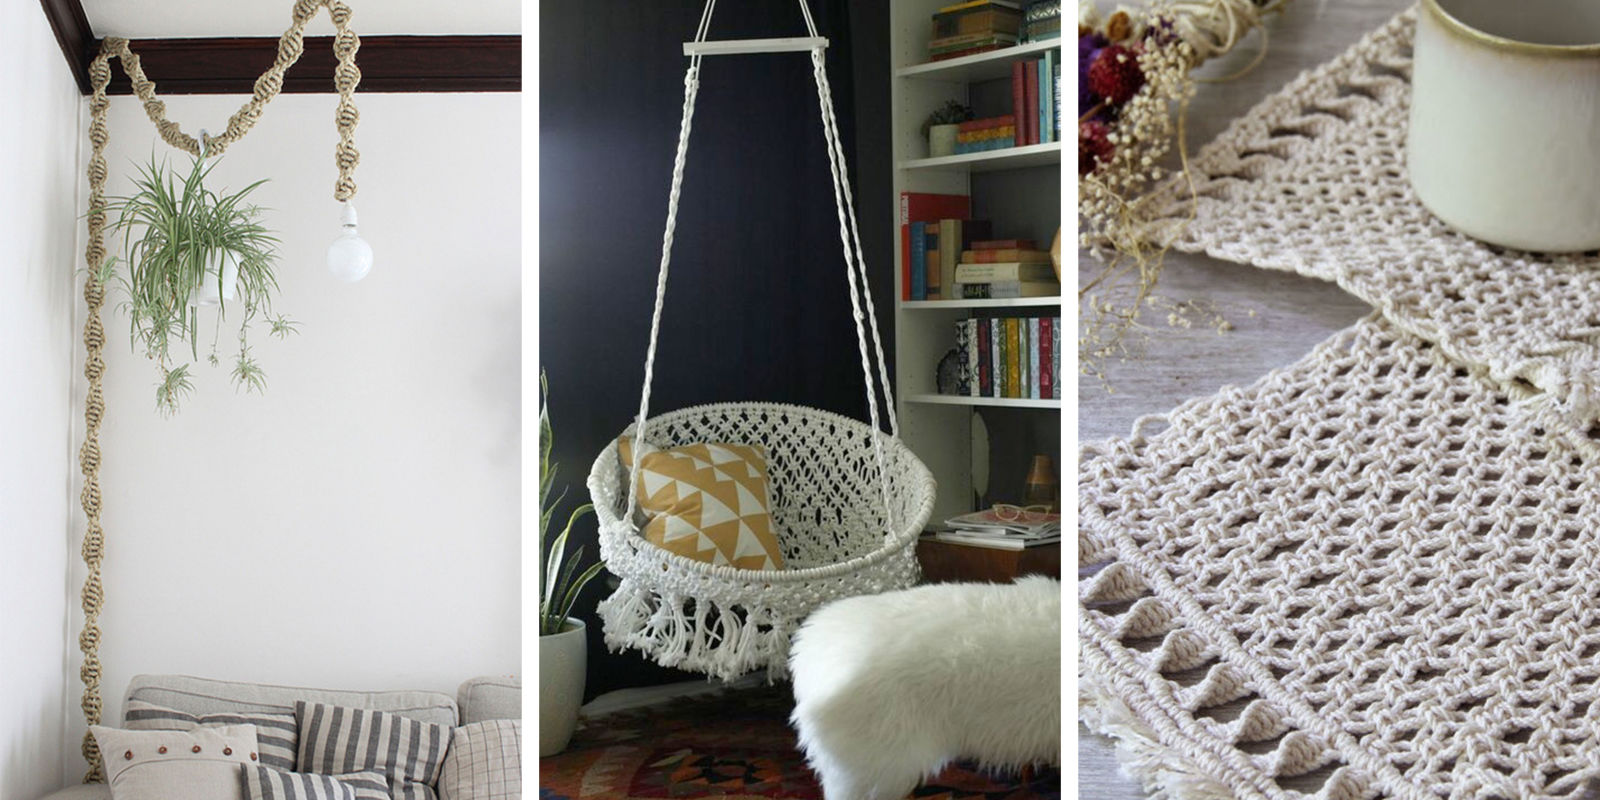 25 Macrame Decorating Ideas The 39 70s Decor Trend Is Back